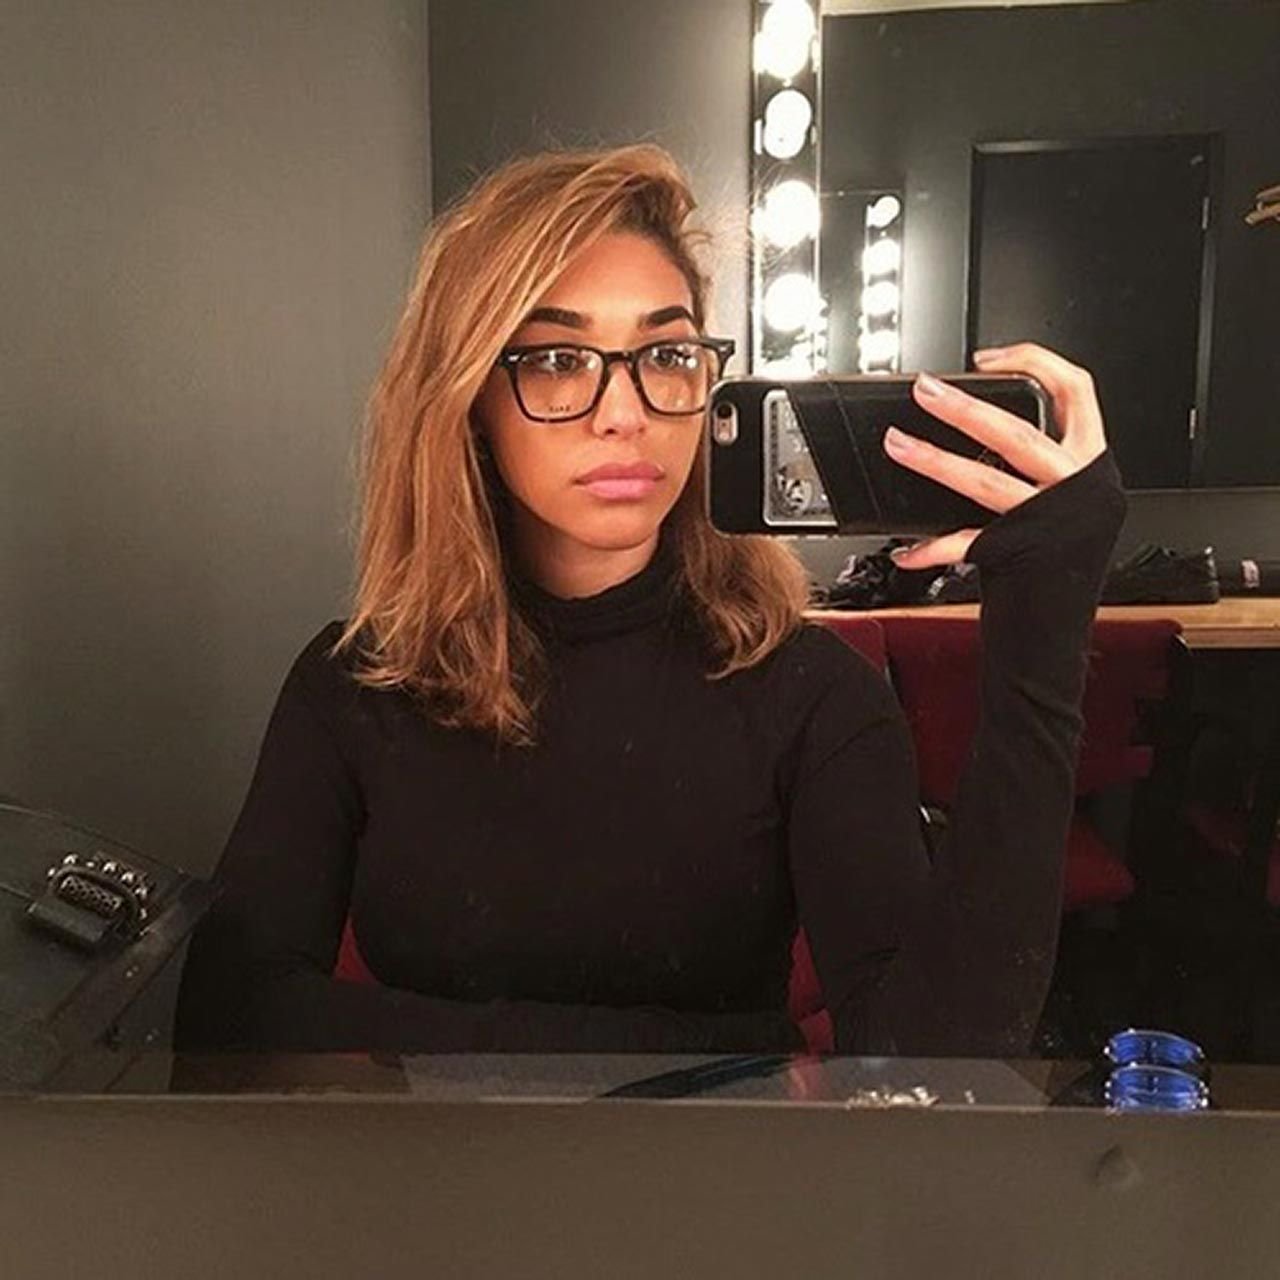 Chantel Jeffries Nude Leaked The Fappening & Sexy 0098